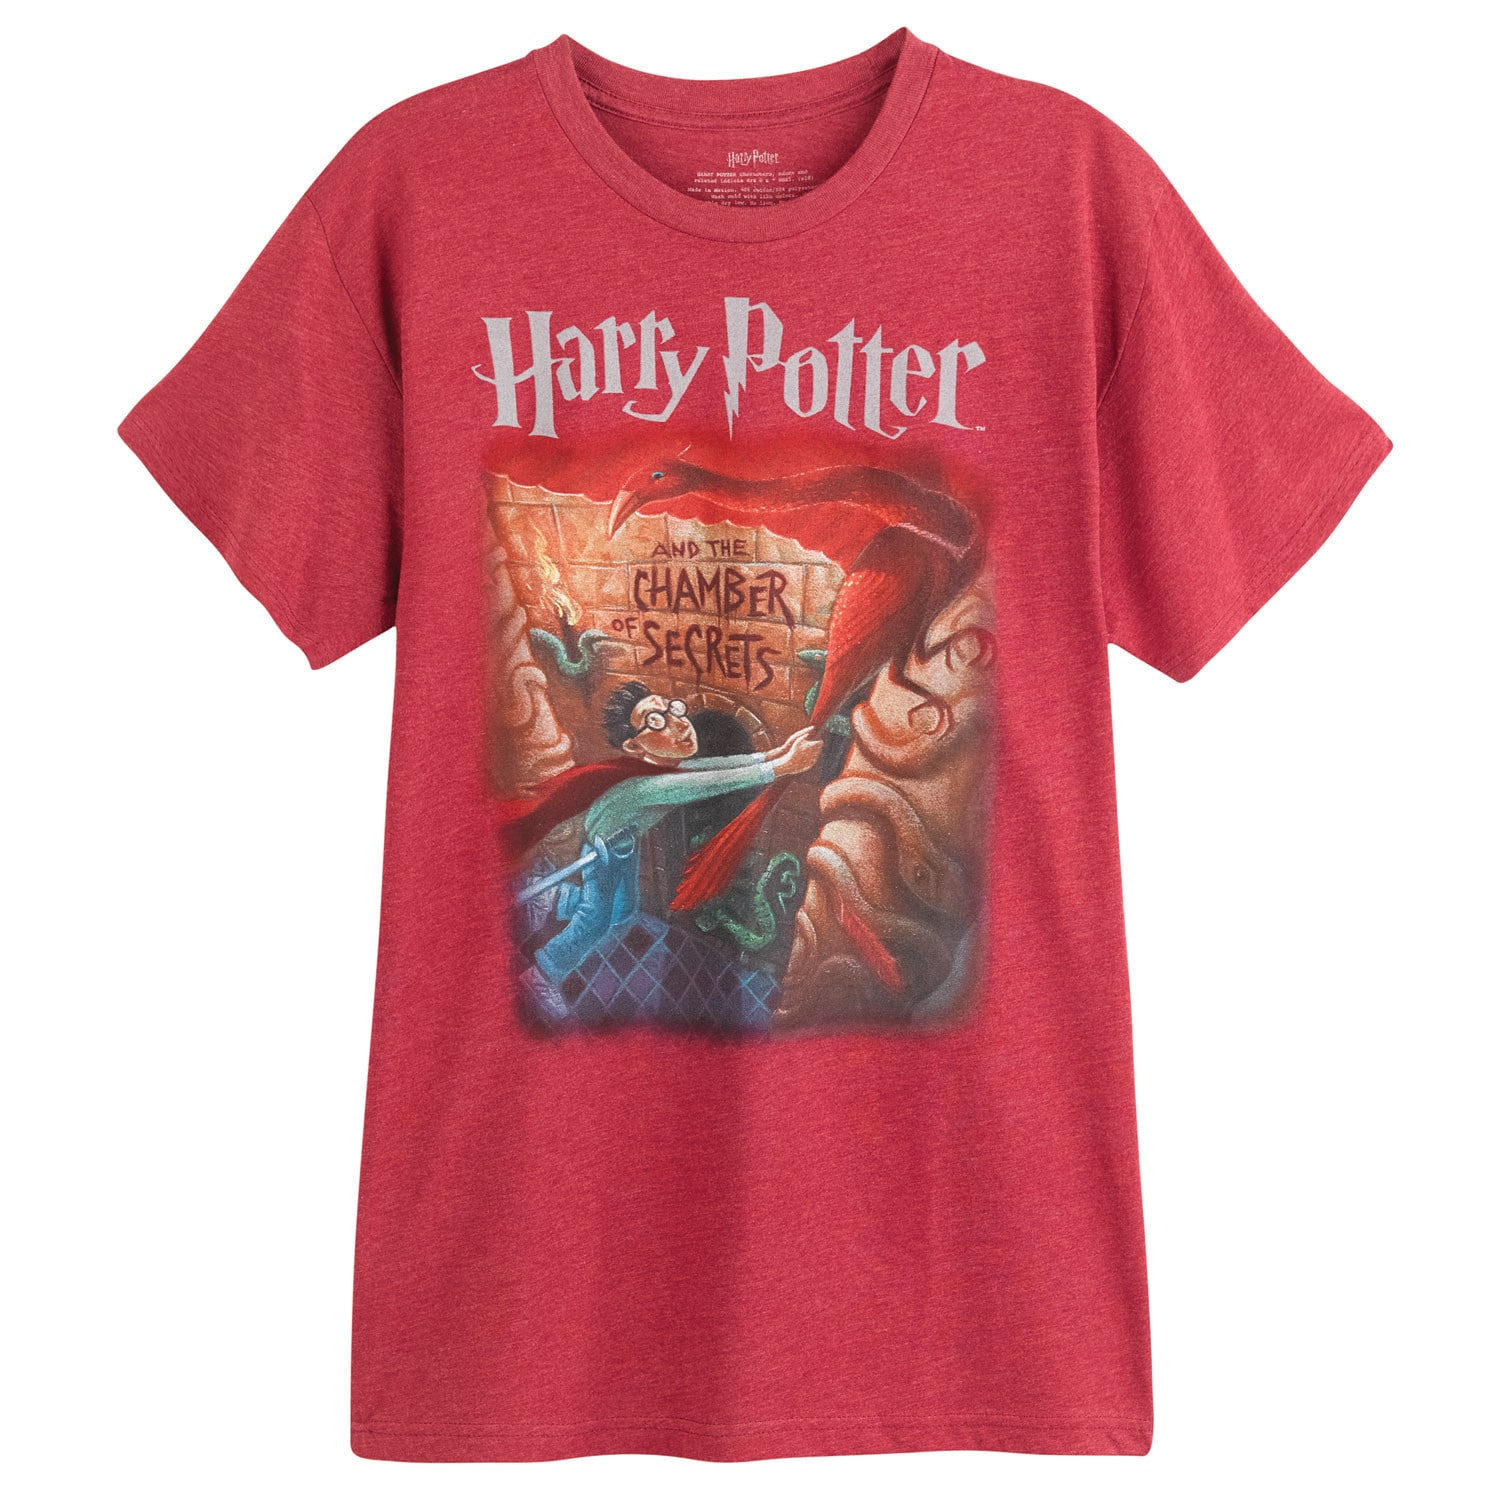 4153cc24e19 Details about Out of Print Unisex Harry Potter and the Chamber of Secrets  Book Cover T-Shirt